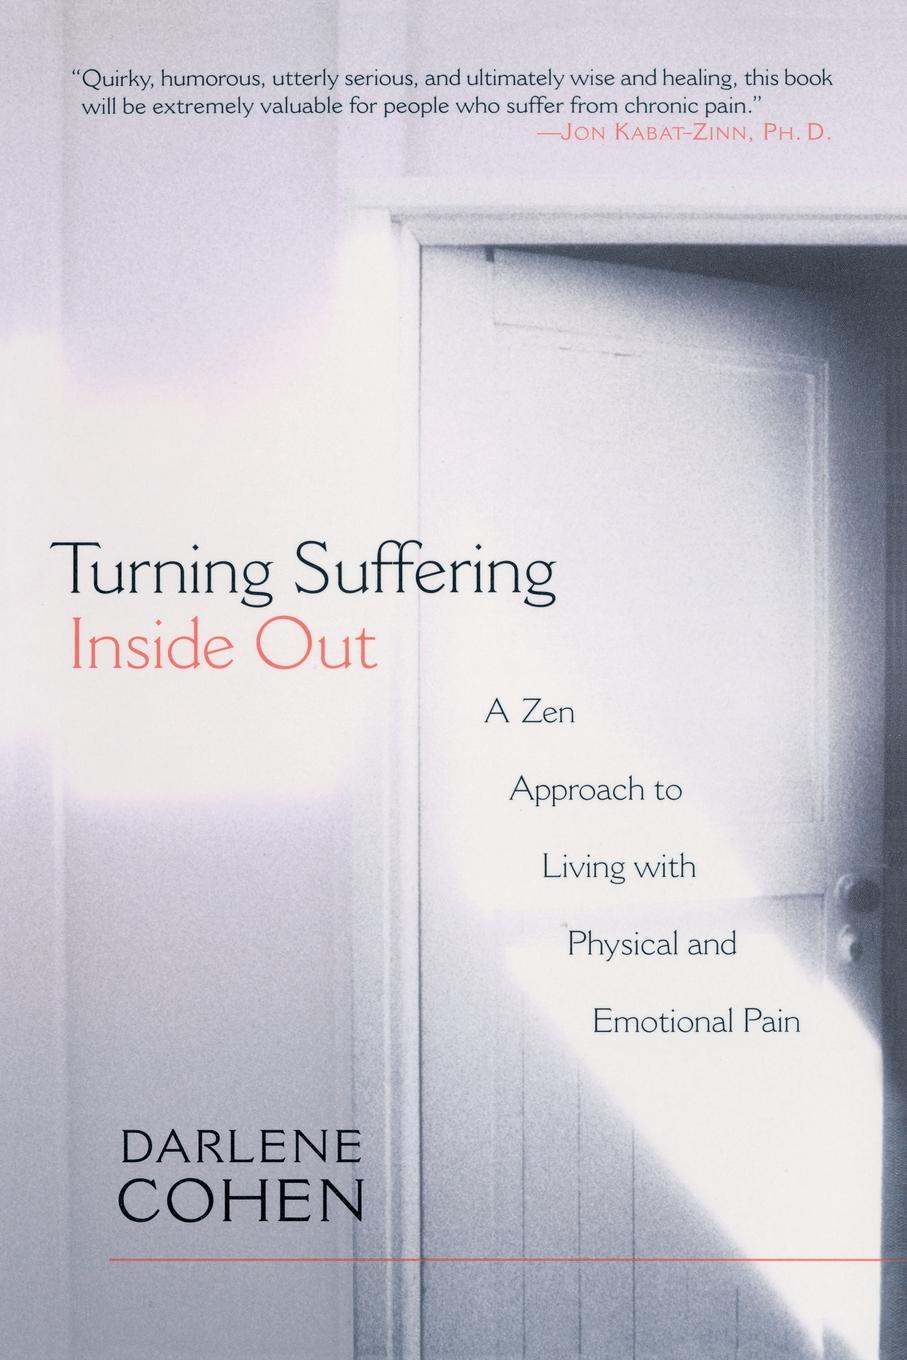 Darlene Cohen Turning Suffering Inside Out. A Zen Approach for Living with Physical and Emotional Pain